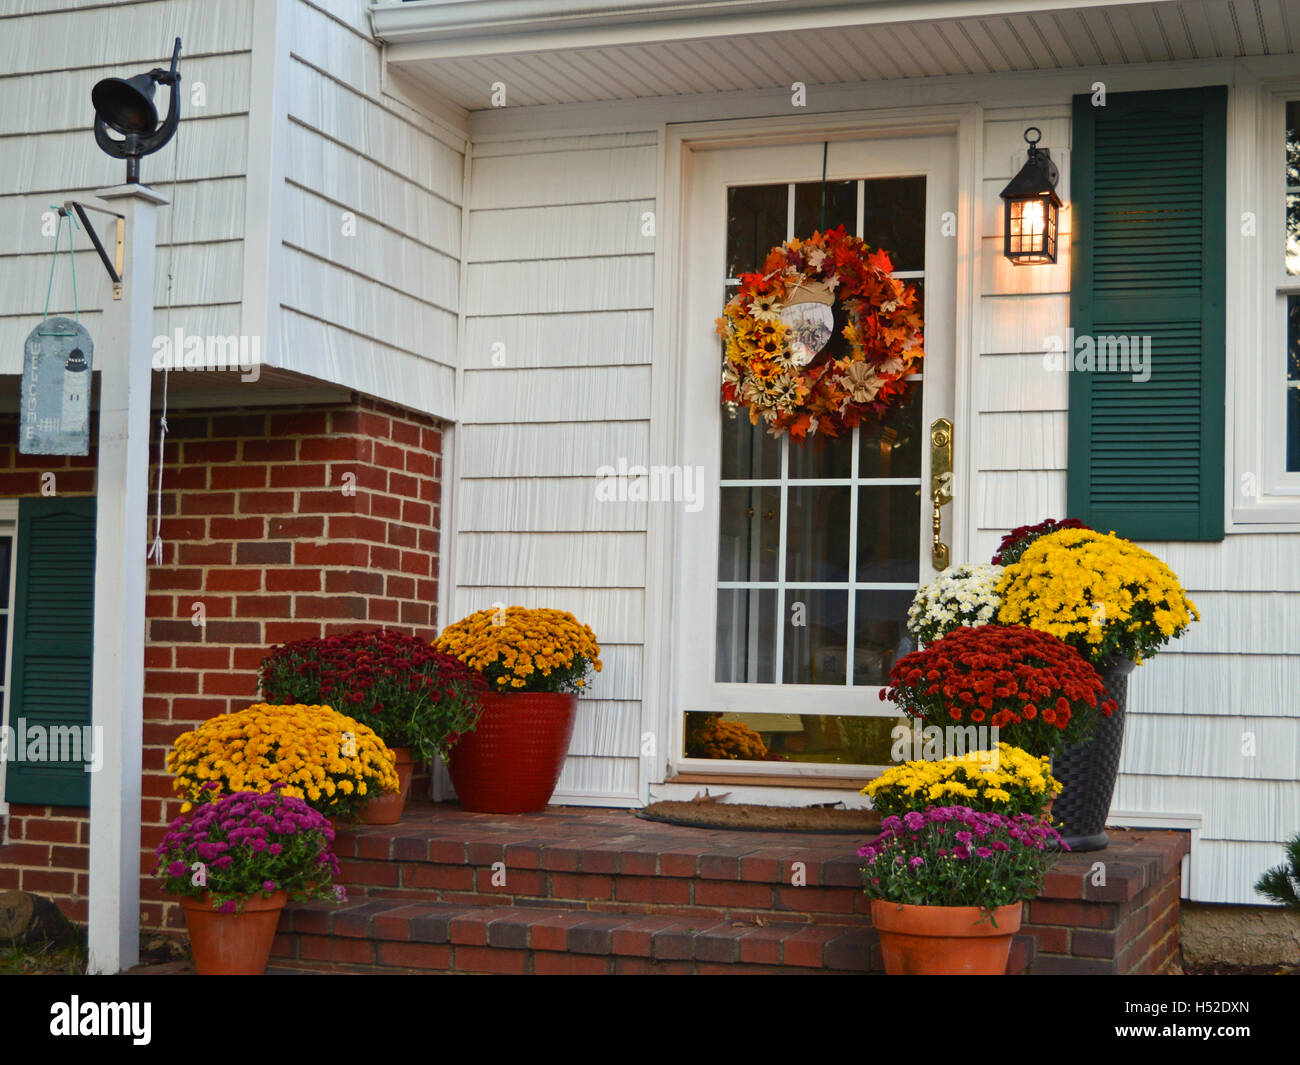 Colorful fall mums bloom on a front stoop in Pasadena, Anne Arundel County, Maryland, USA. - Stock Image